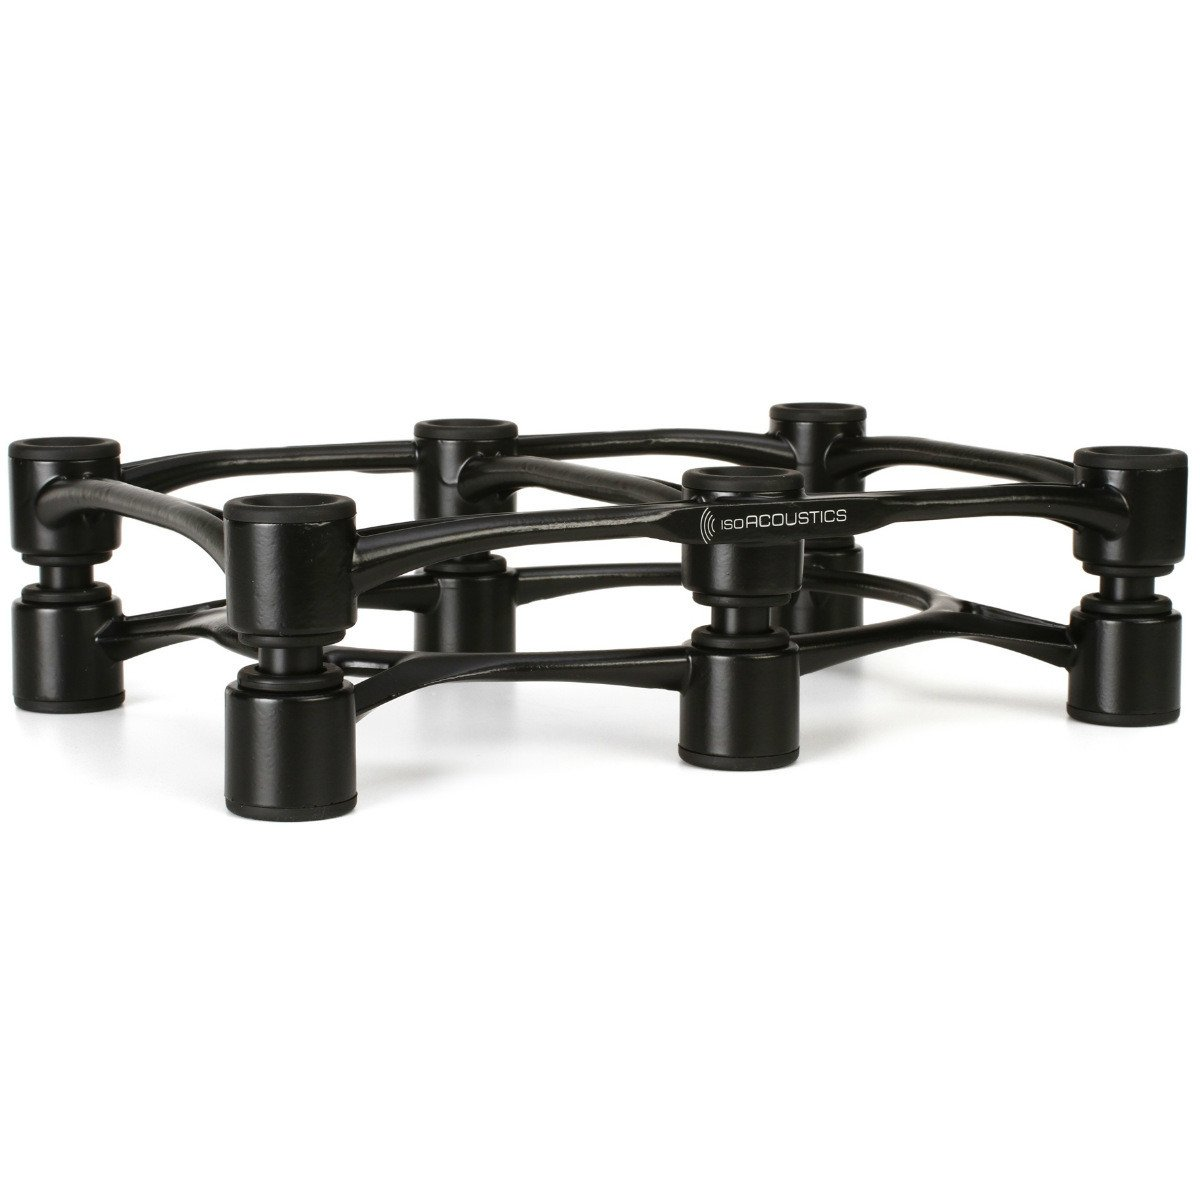 Studio Monitor Stands - IsoAcoustics Aperta 300 Sculpted Aluminum Acoustic Isolation Stand (SINGLE)